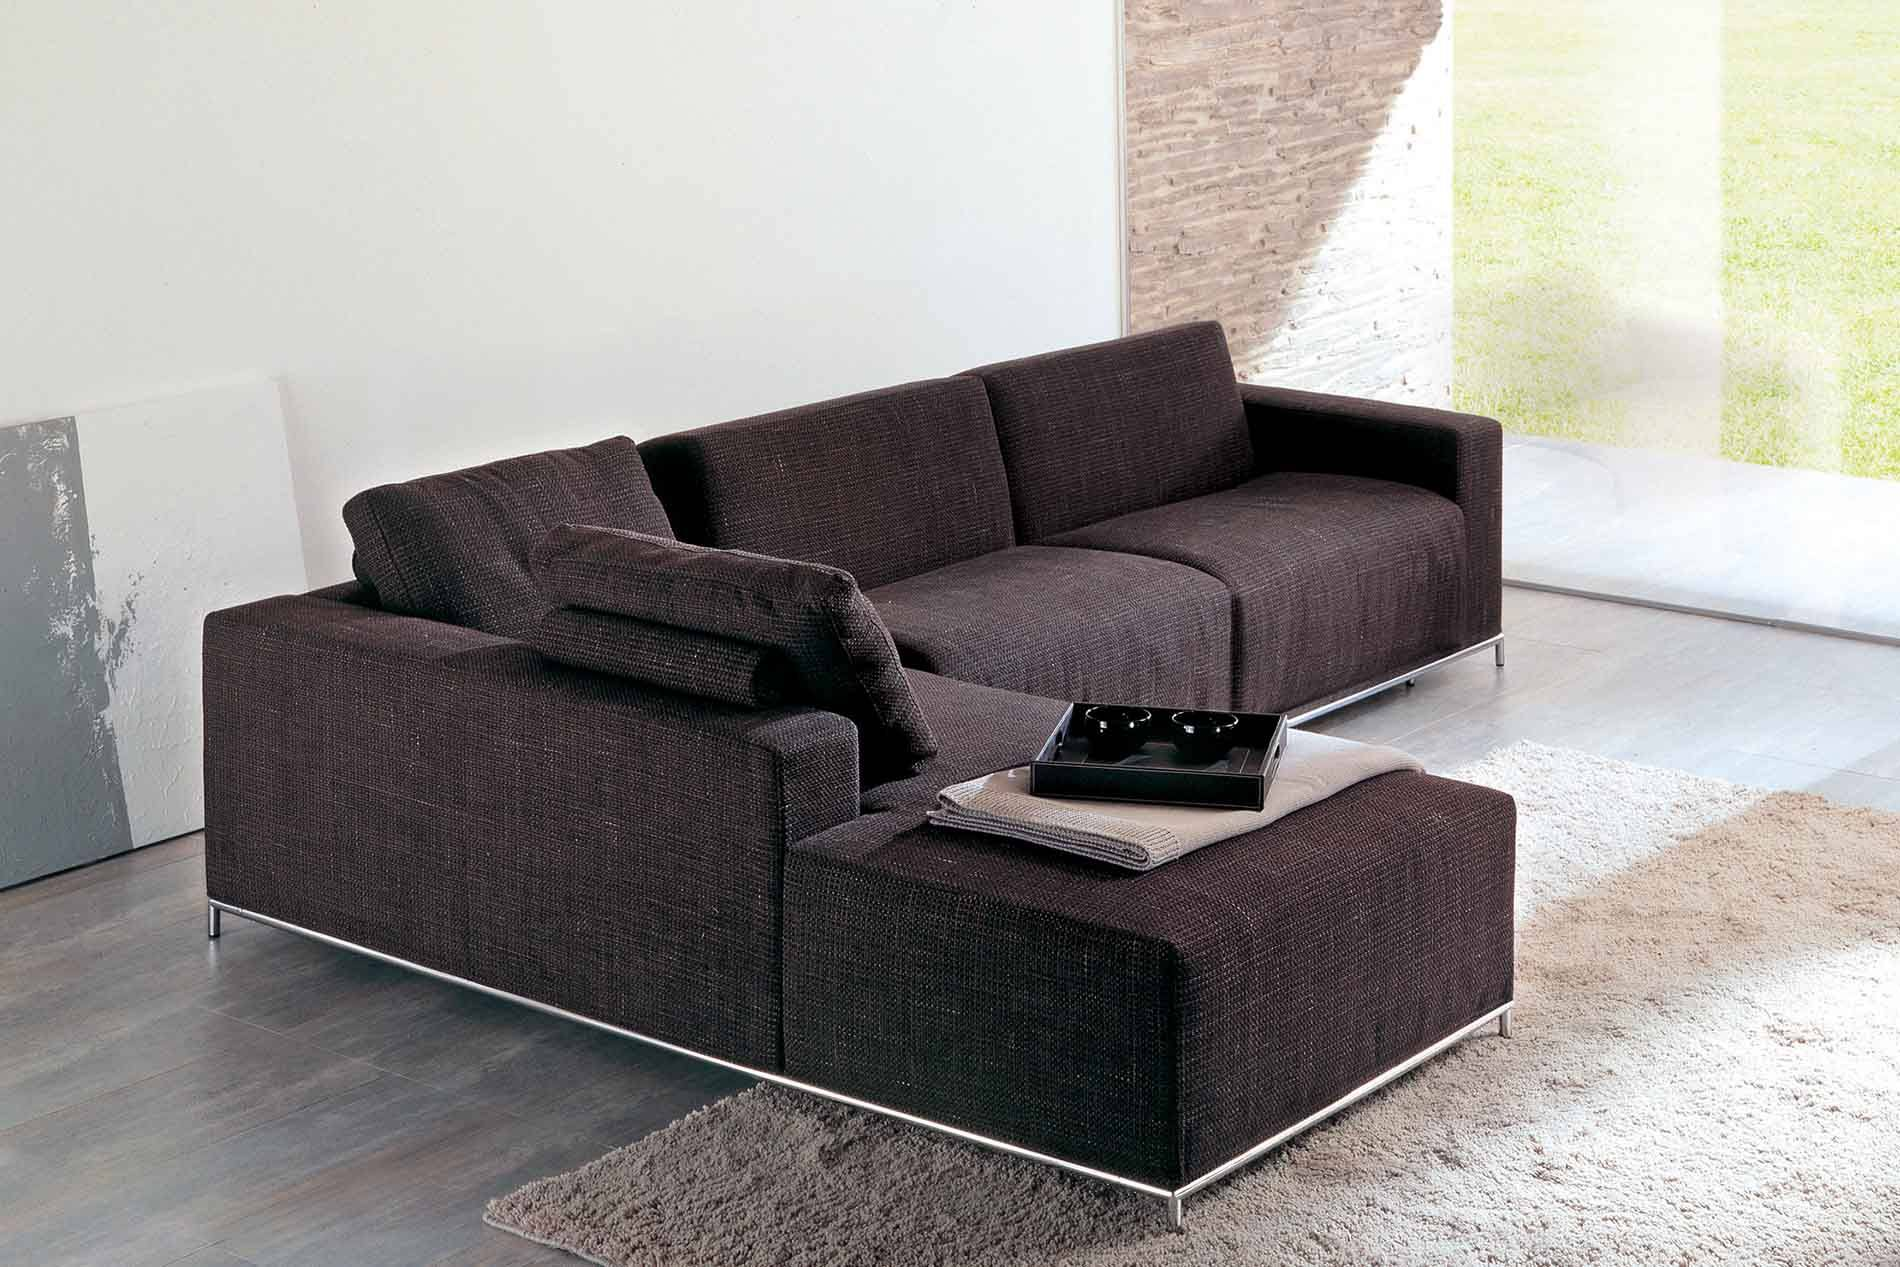 ecksofa kos mit schlaffunktion von pol74 bett und sofa. Black Bedroom Furniture Sets. Home Design Ideas